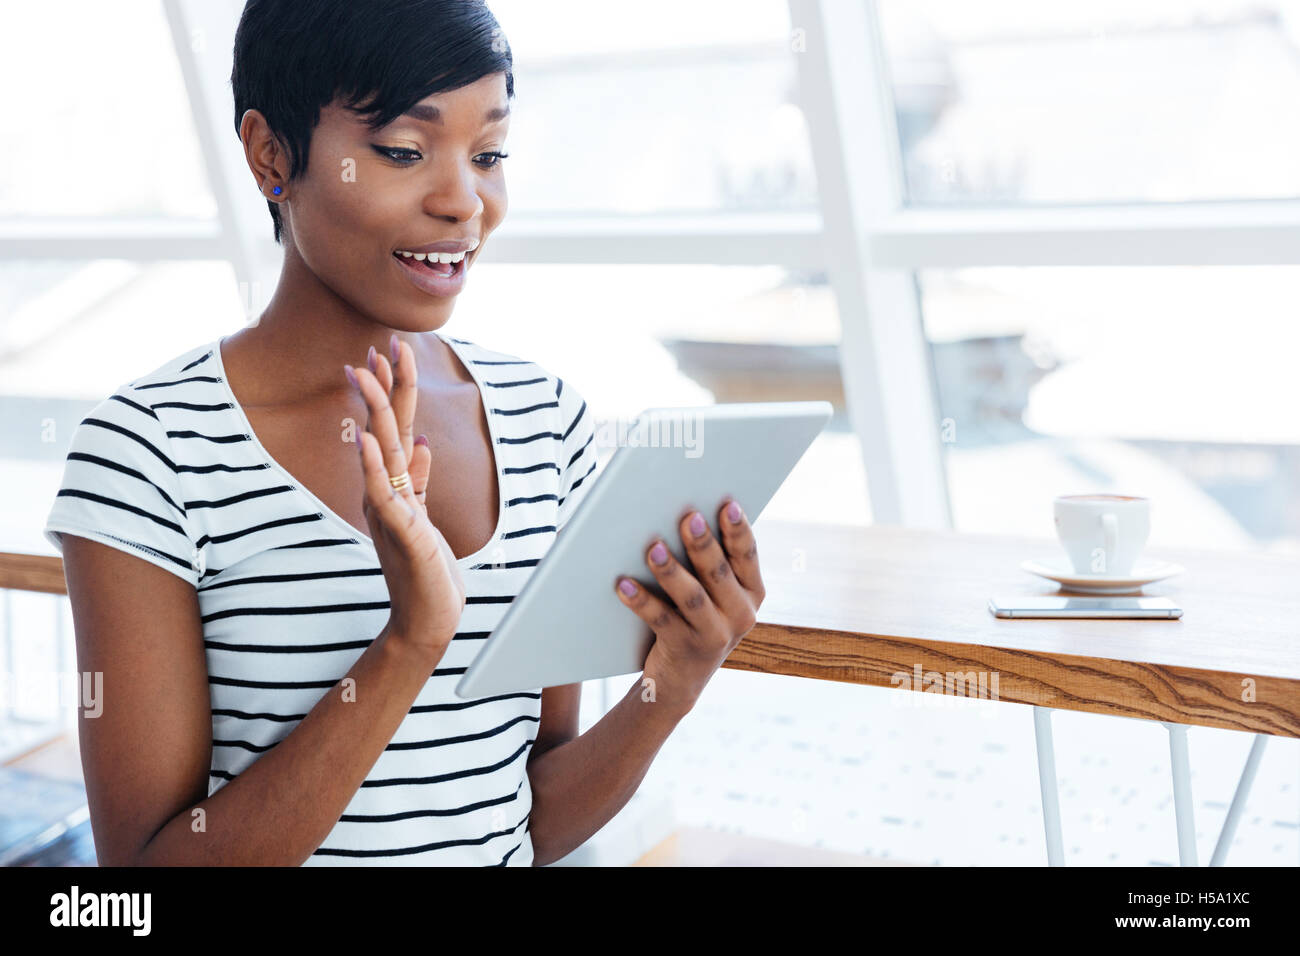 Happy afro-américain businesswoman holding tablet computer and waving in office Photo Stock